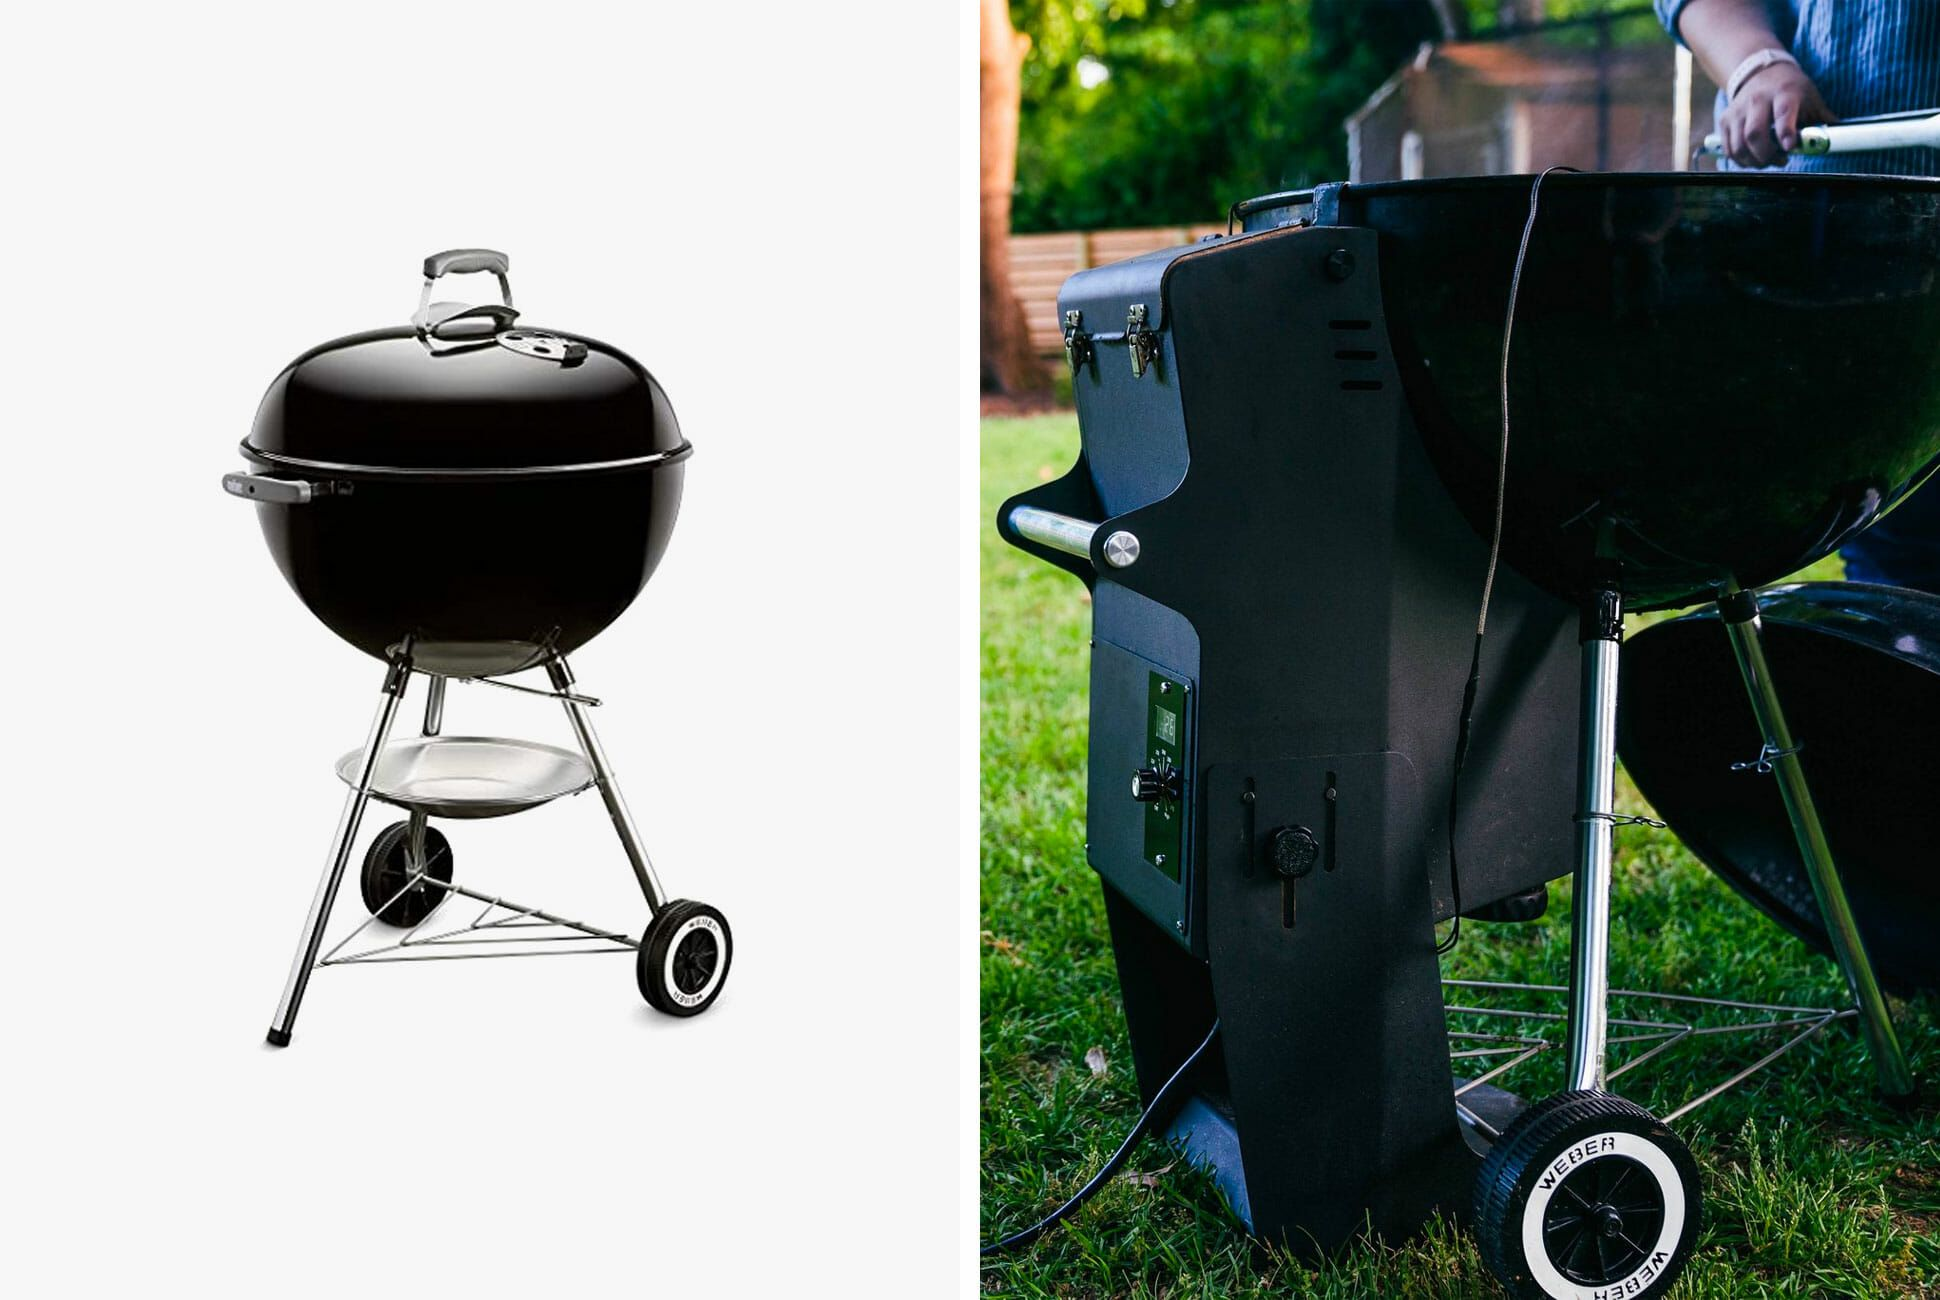 7 Products You Need To Hack Your Weber Kettle Charcoal Grill - Weber Outdoor Fireplace